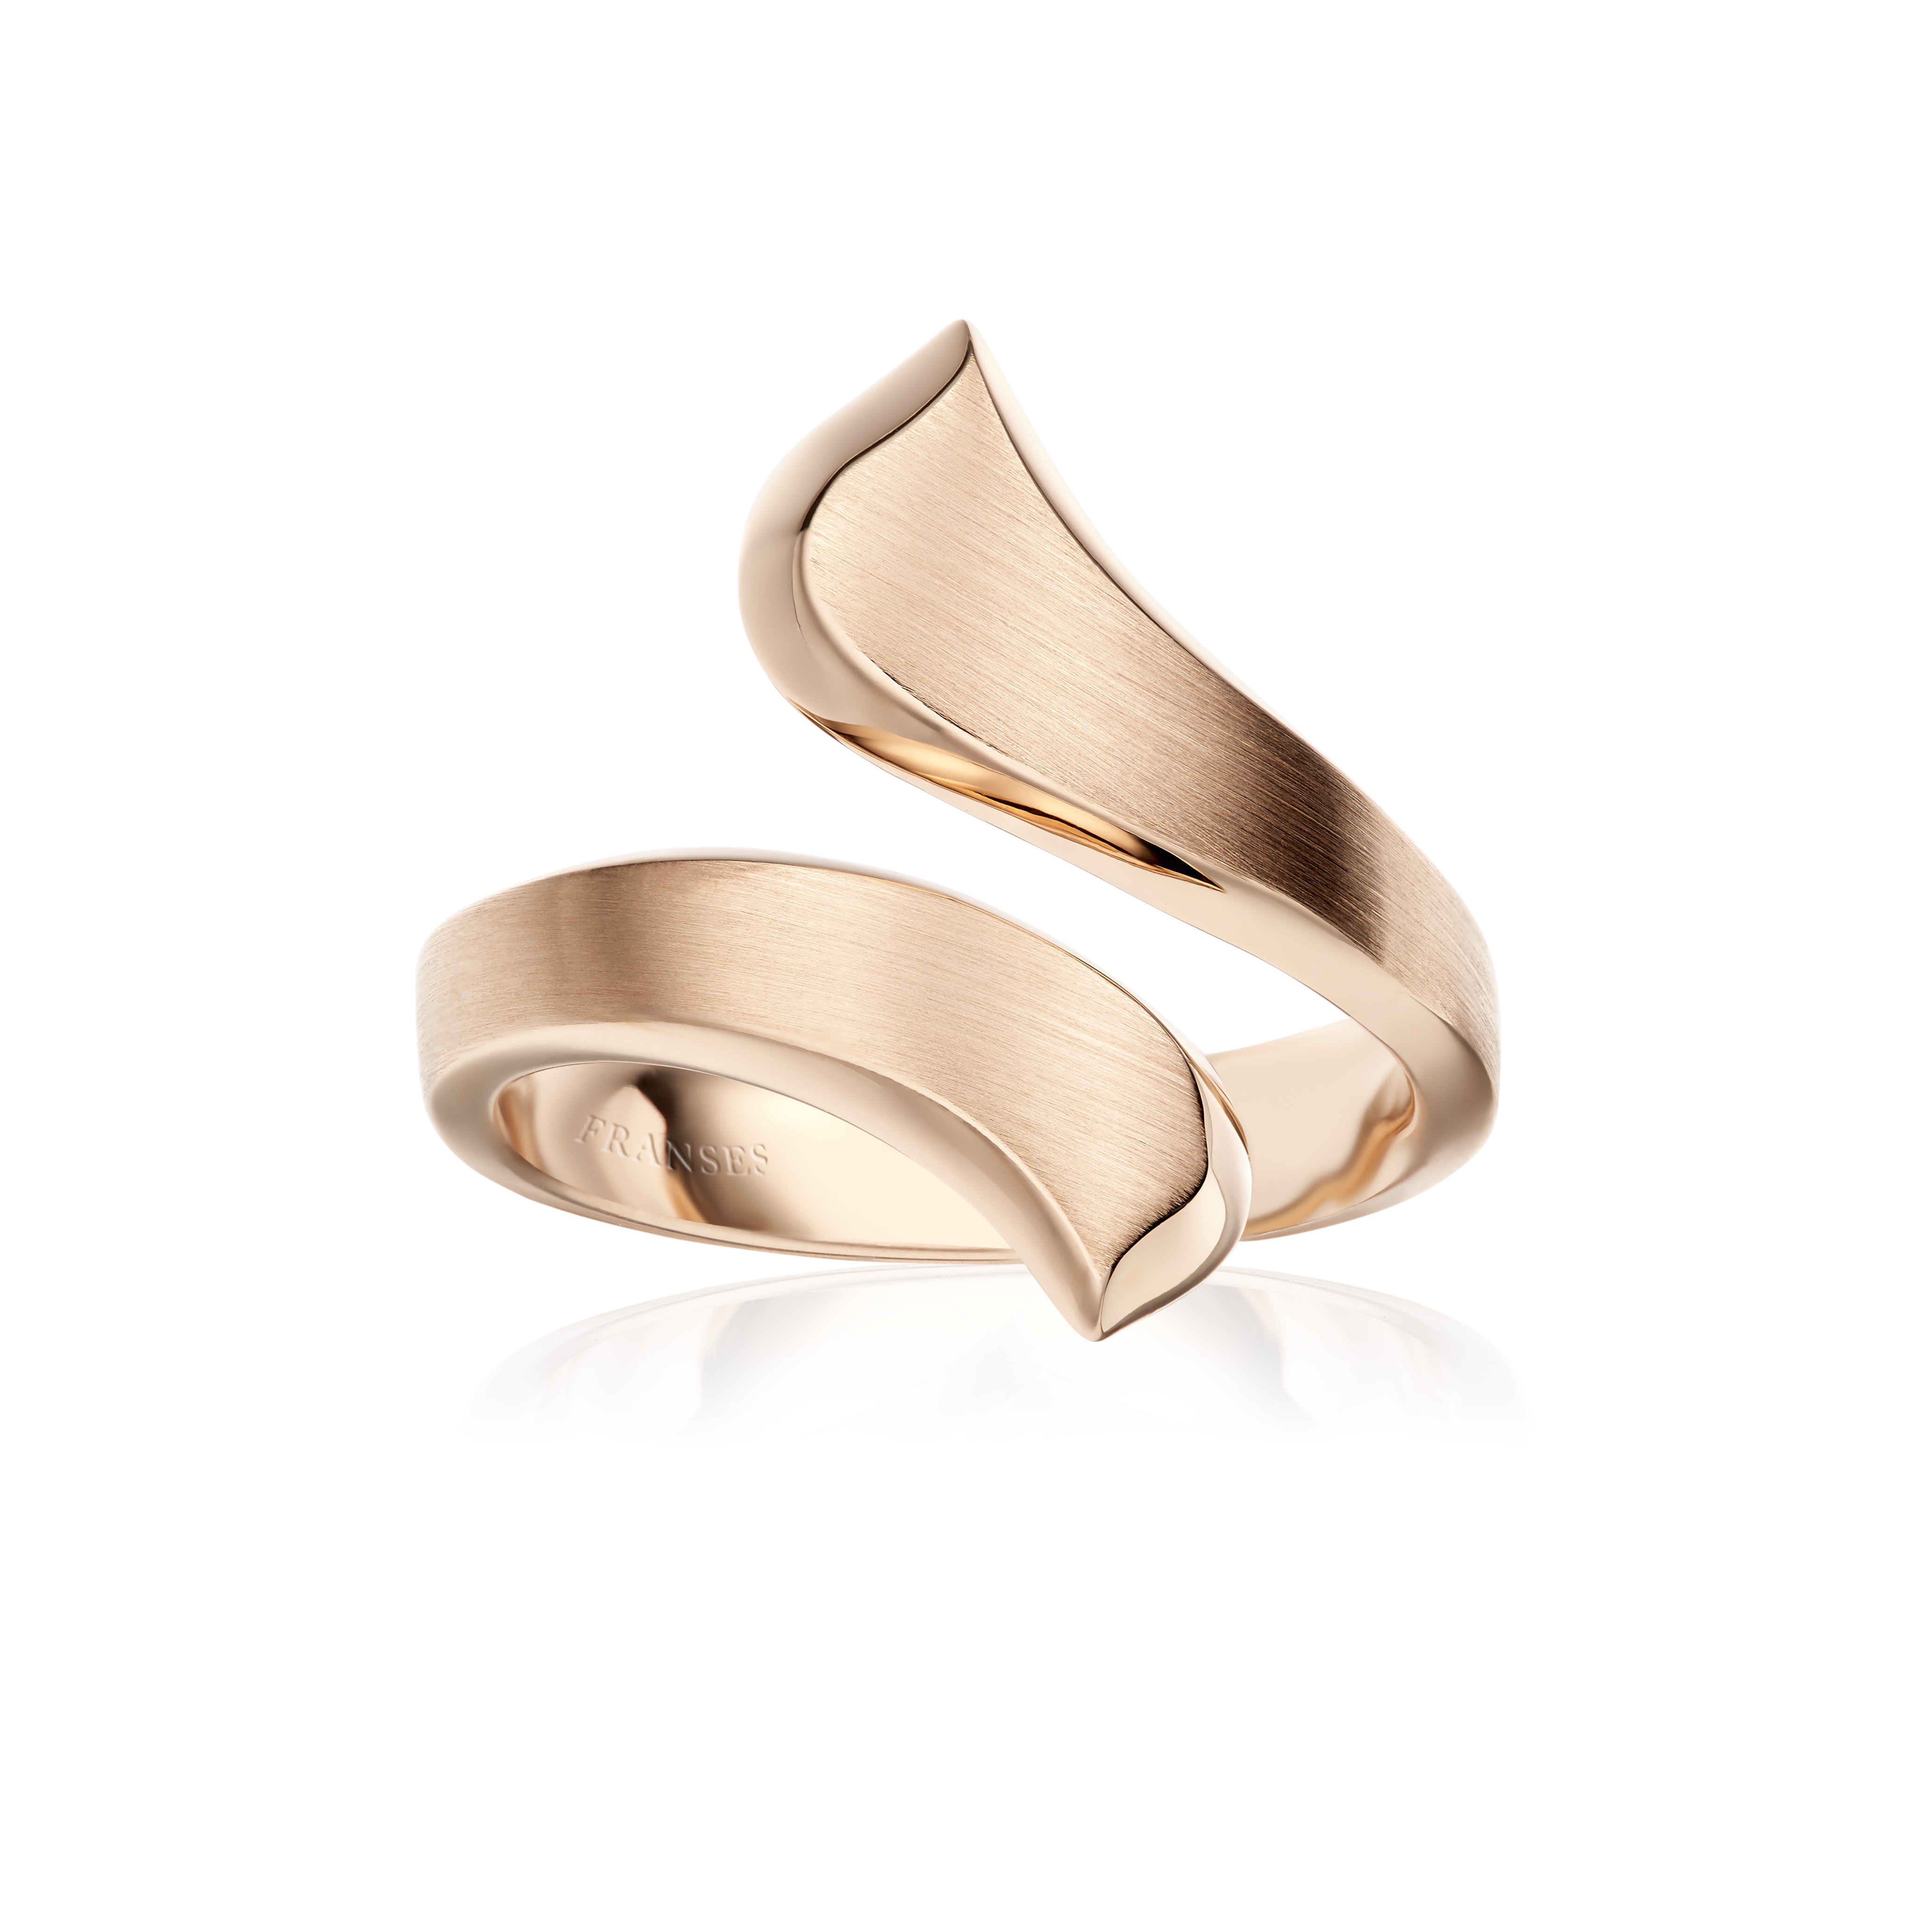 Ribbon Ring - 01-20-011